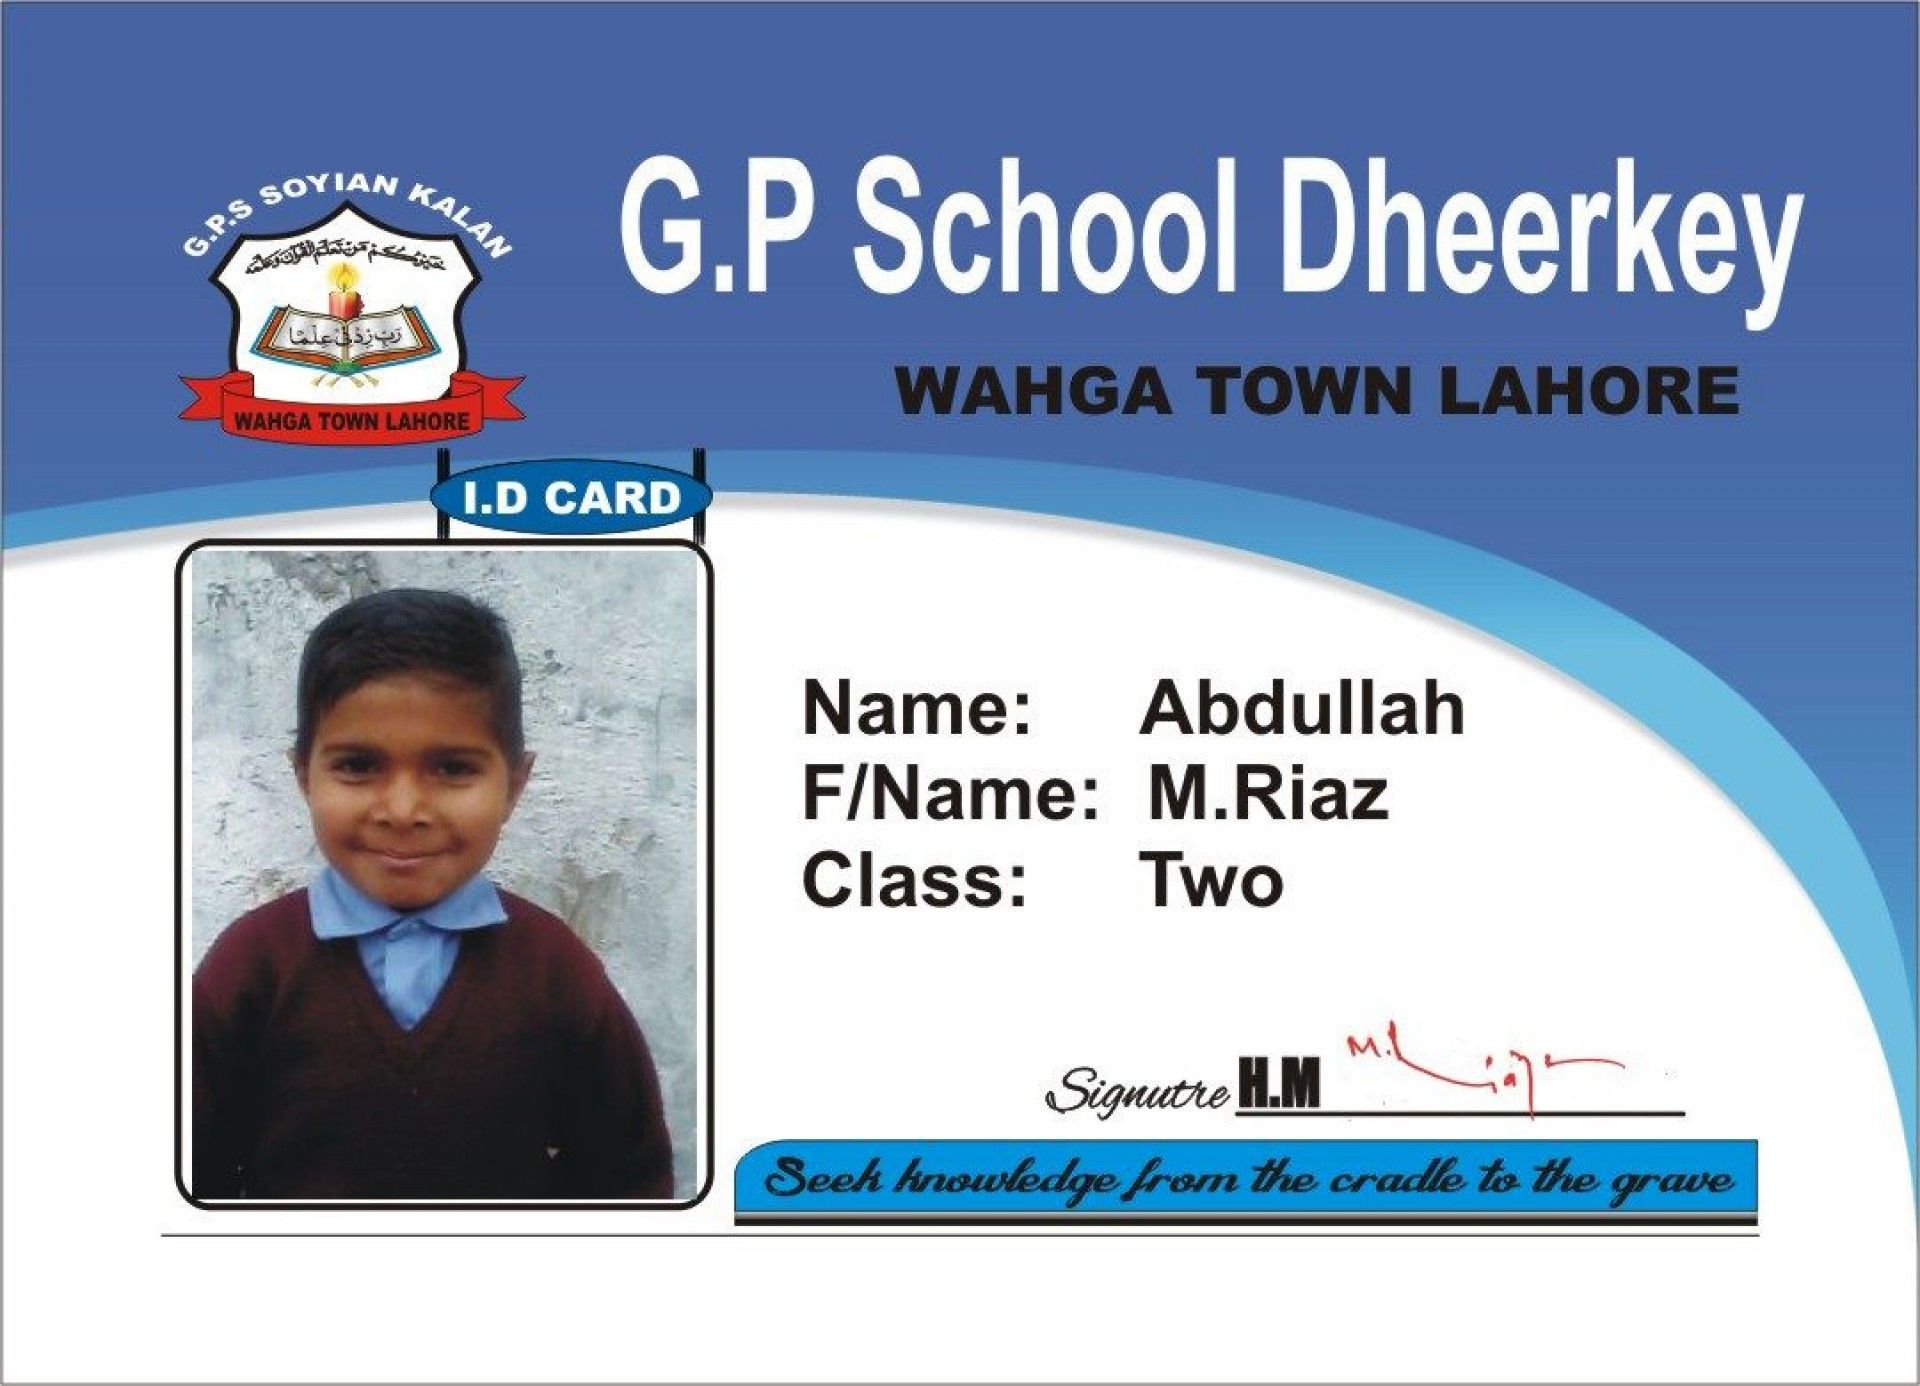 008 Wonderful Student Id Card Template Idea  Free Psd Download Word School1920